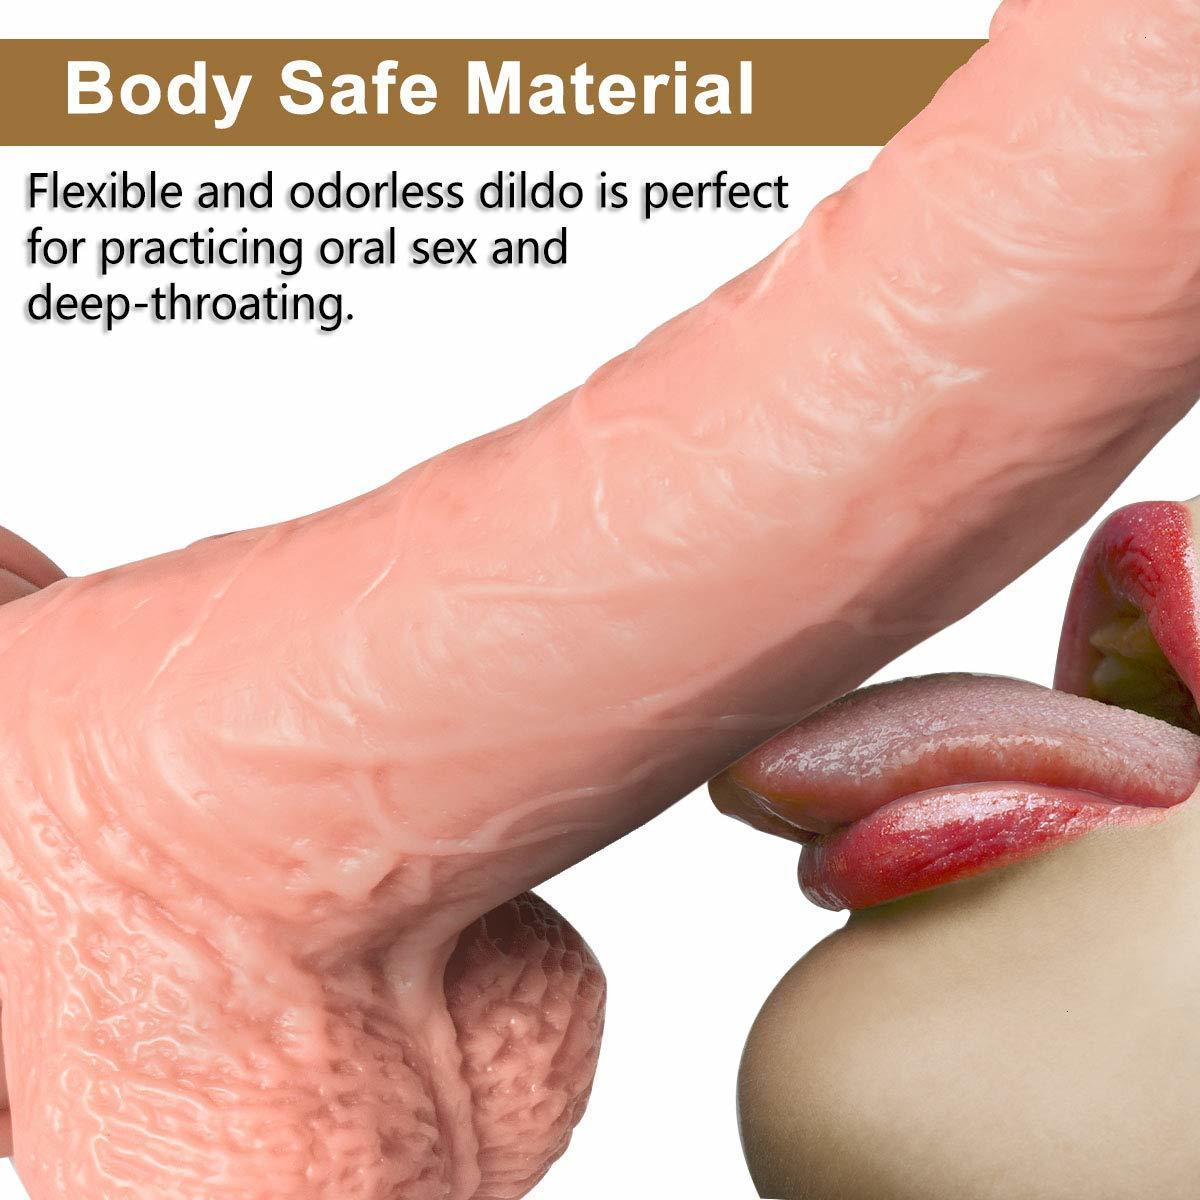 7.5 Inches Women's Huge Dildo Dildos Realistas Eroticos Big Realistic Shape With Suction Cup Masturbator Adult Toy Sex Products